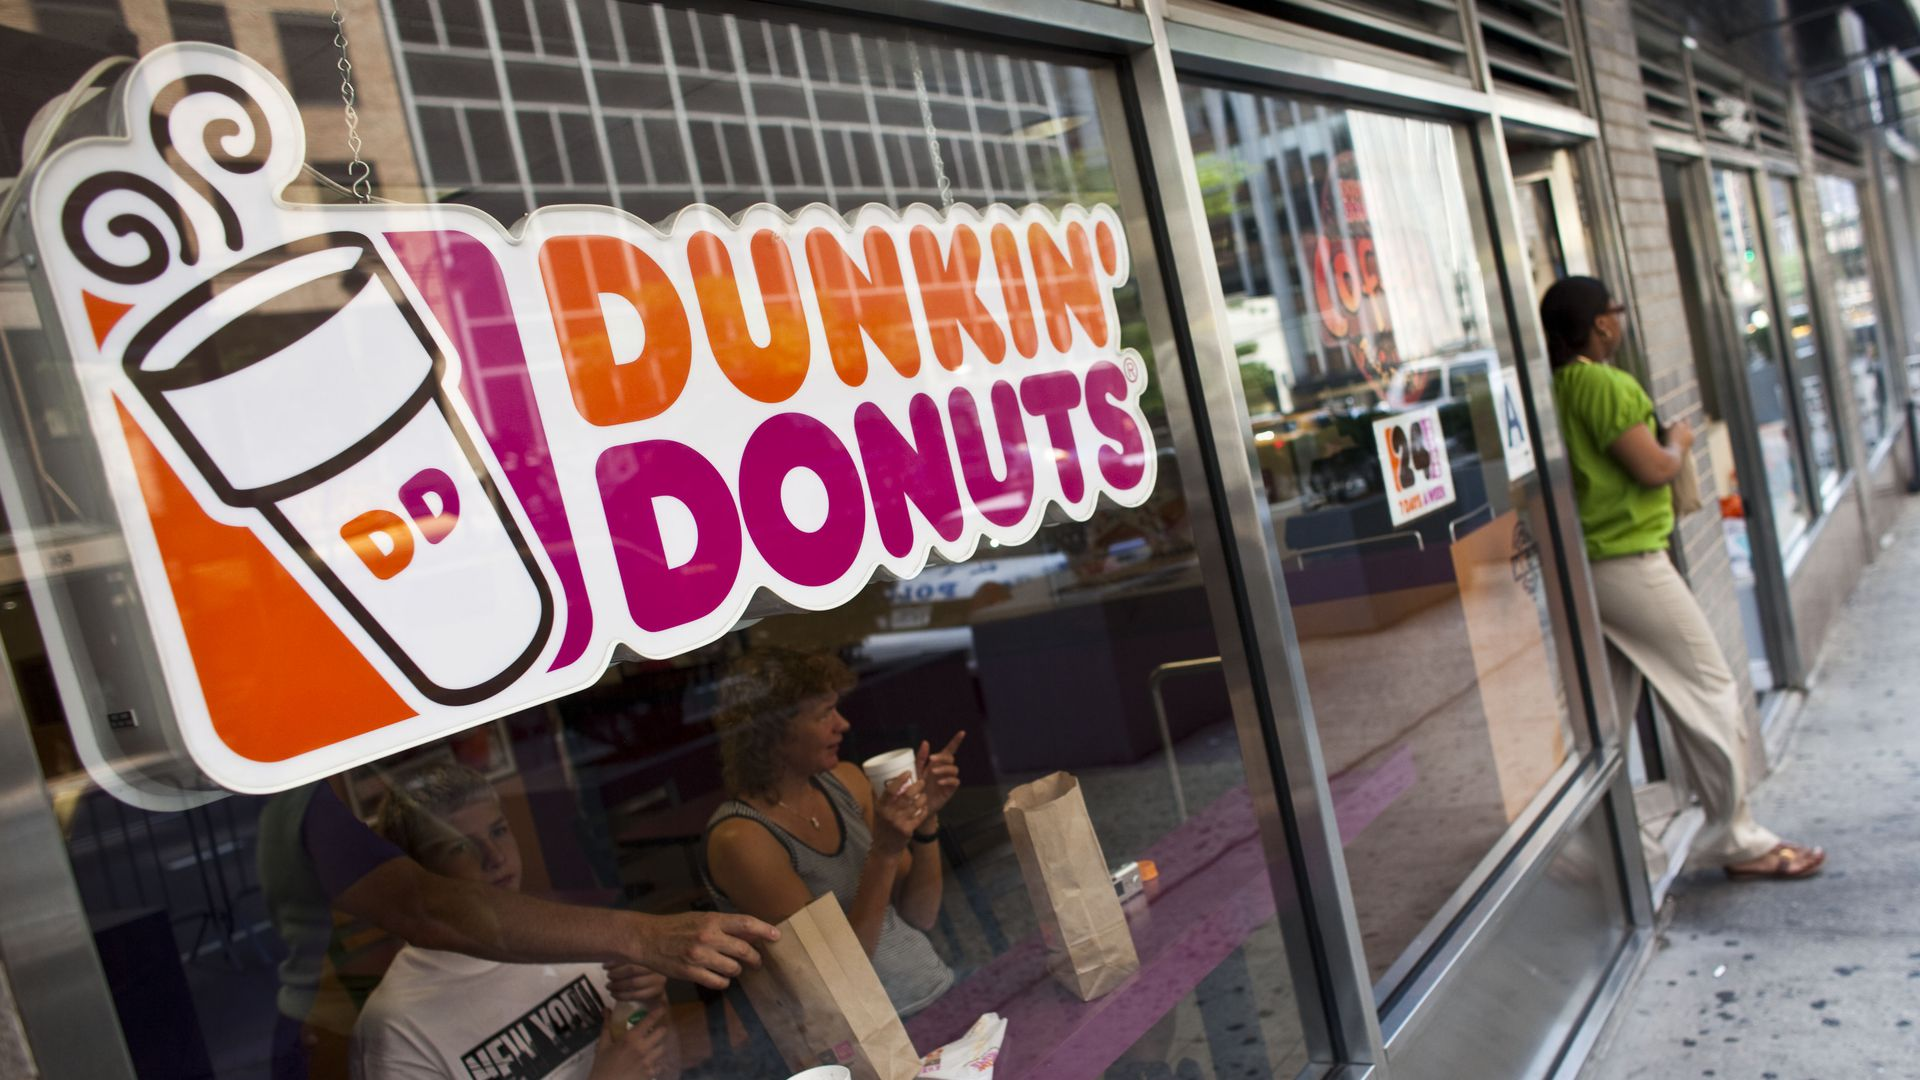 40b9c36e6f1 Dunkin' Donuts plans to eliminate foam cups by 2020 - Axios